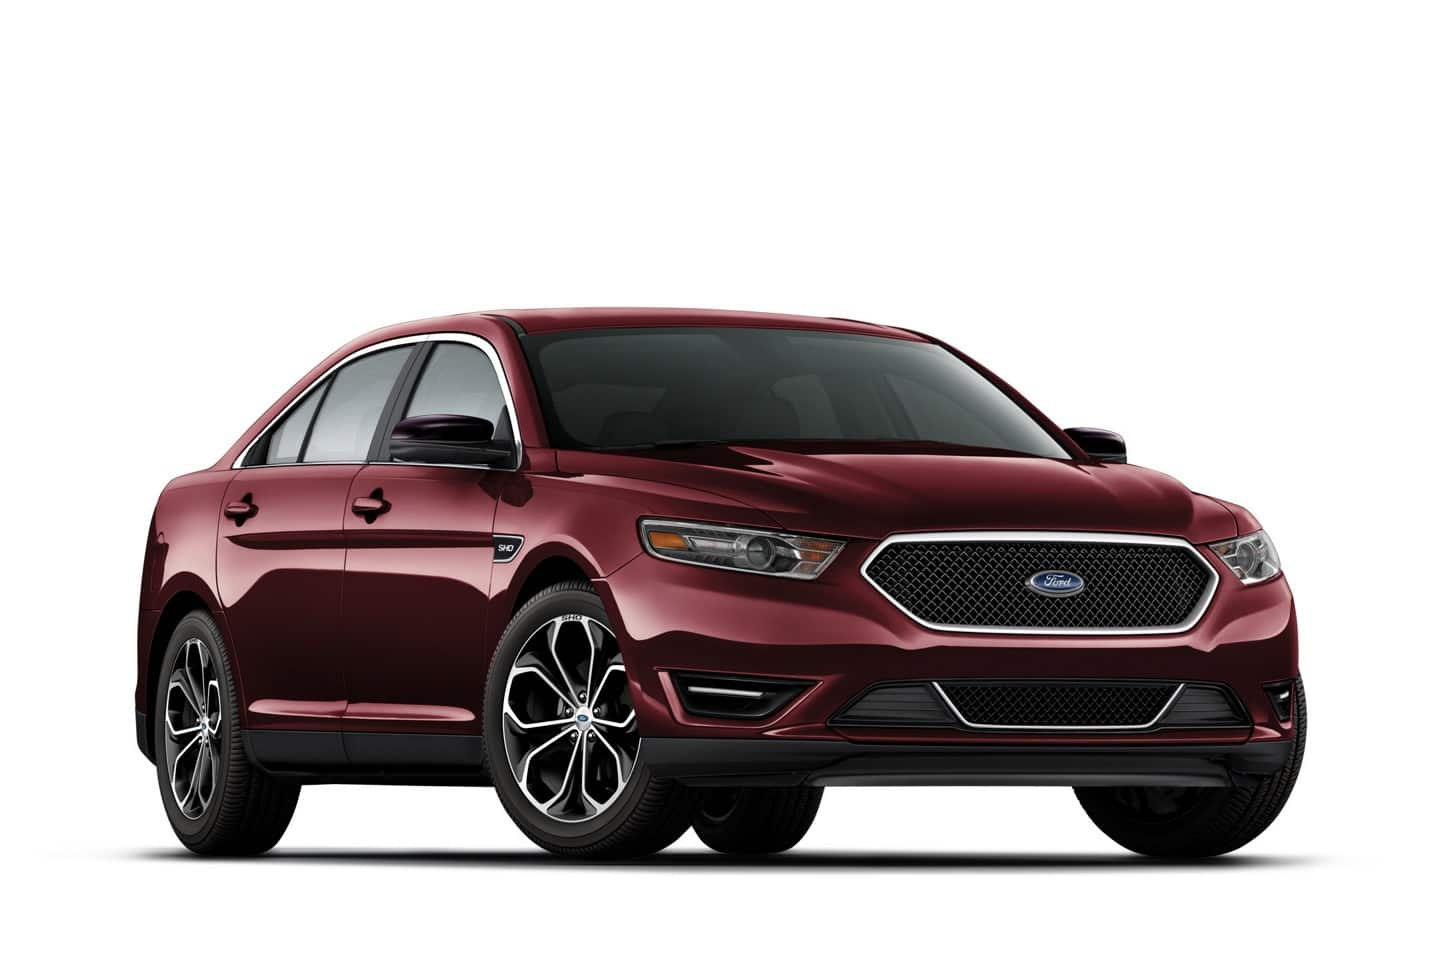 30 Concept of 2019 Ford Sho Prices for 2019 Ford Sho